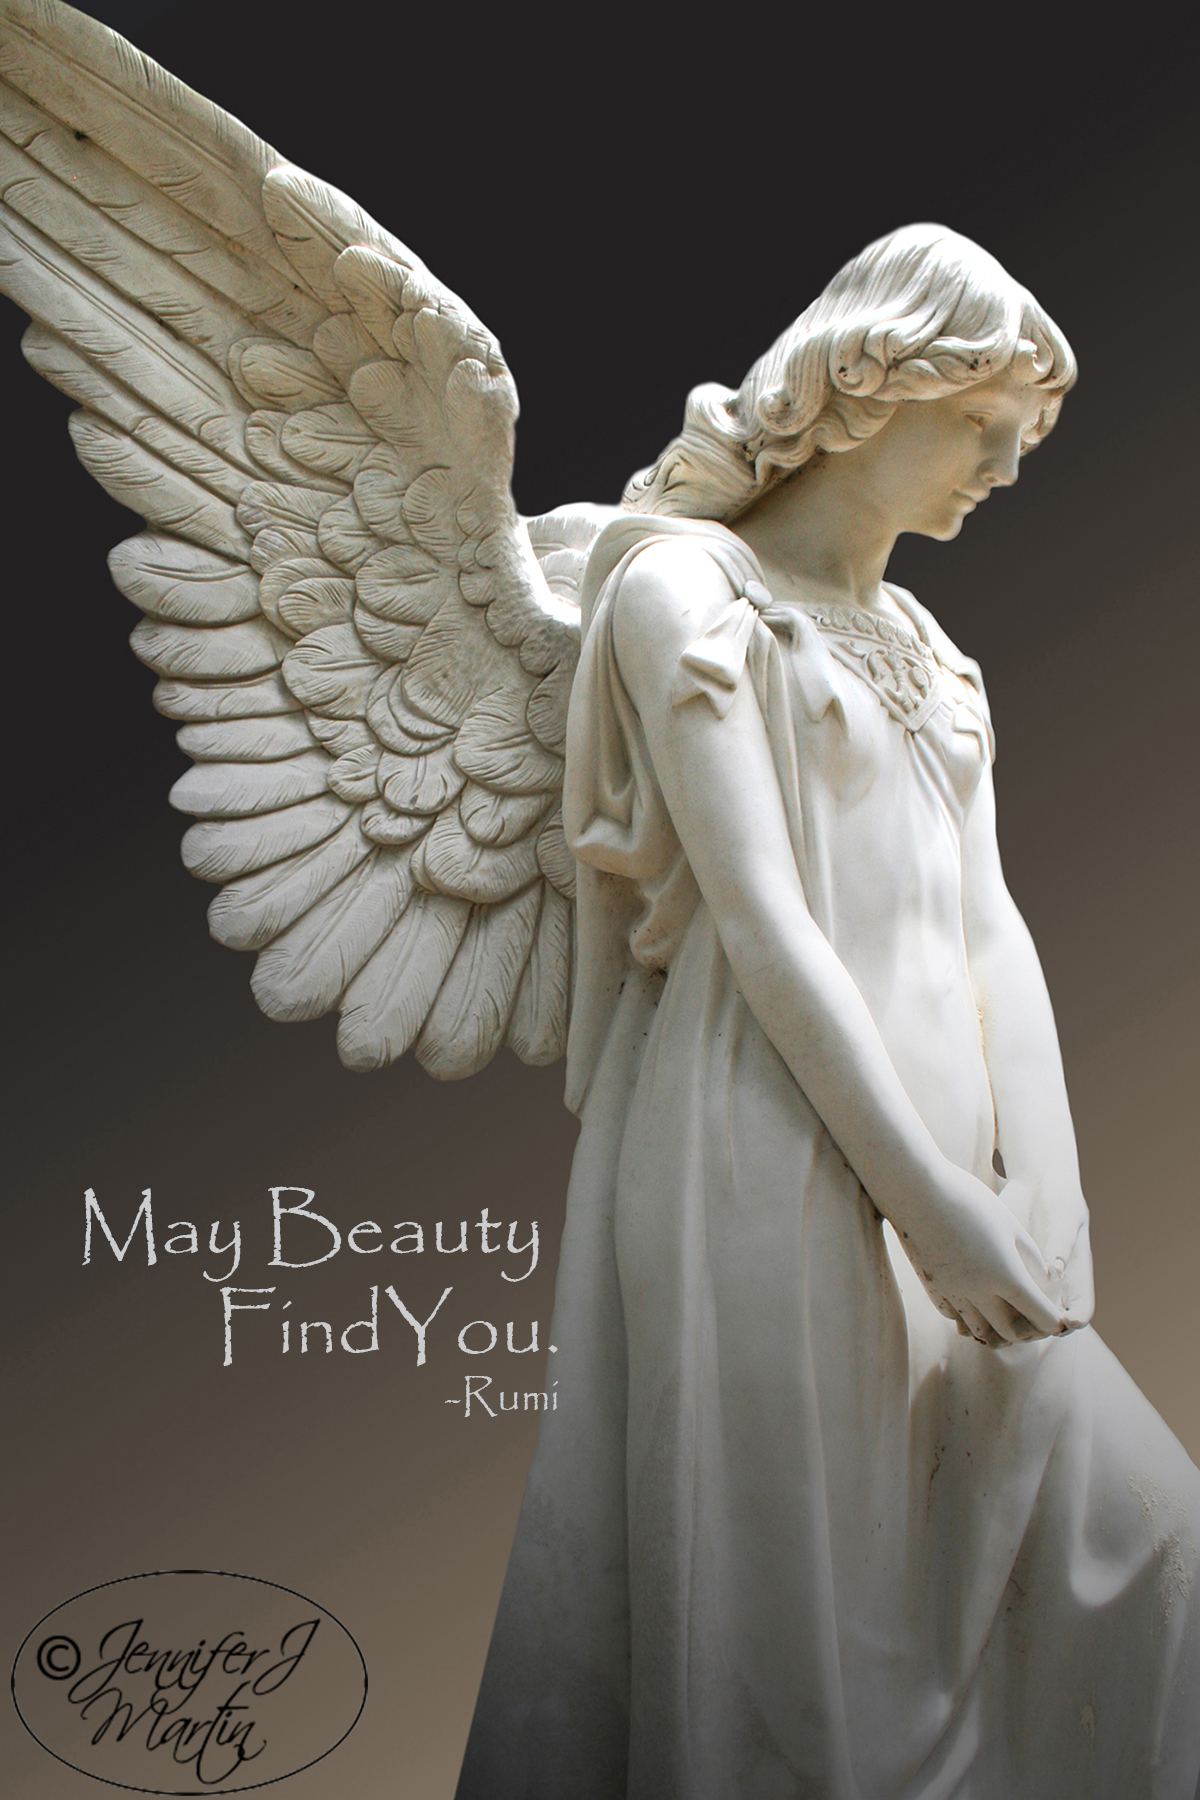 Danny's Angel - May Beauty Find You (Rumi Quote)